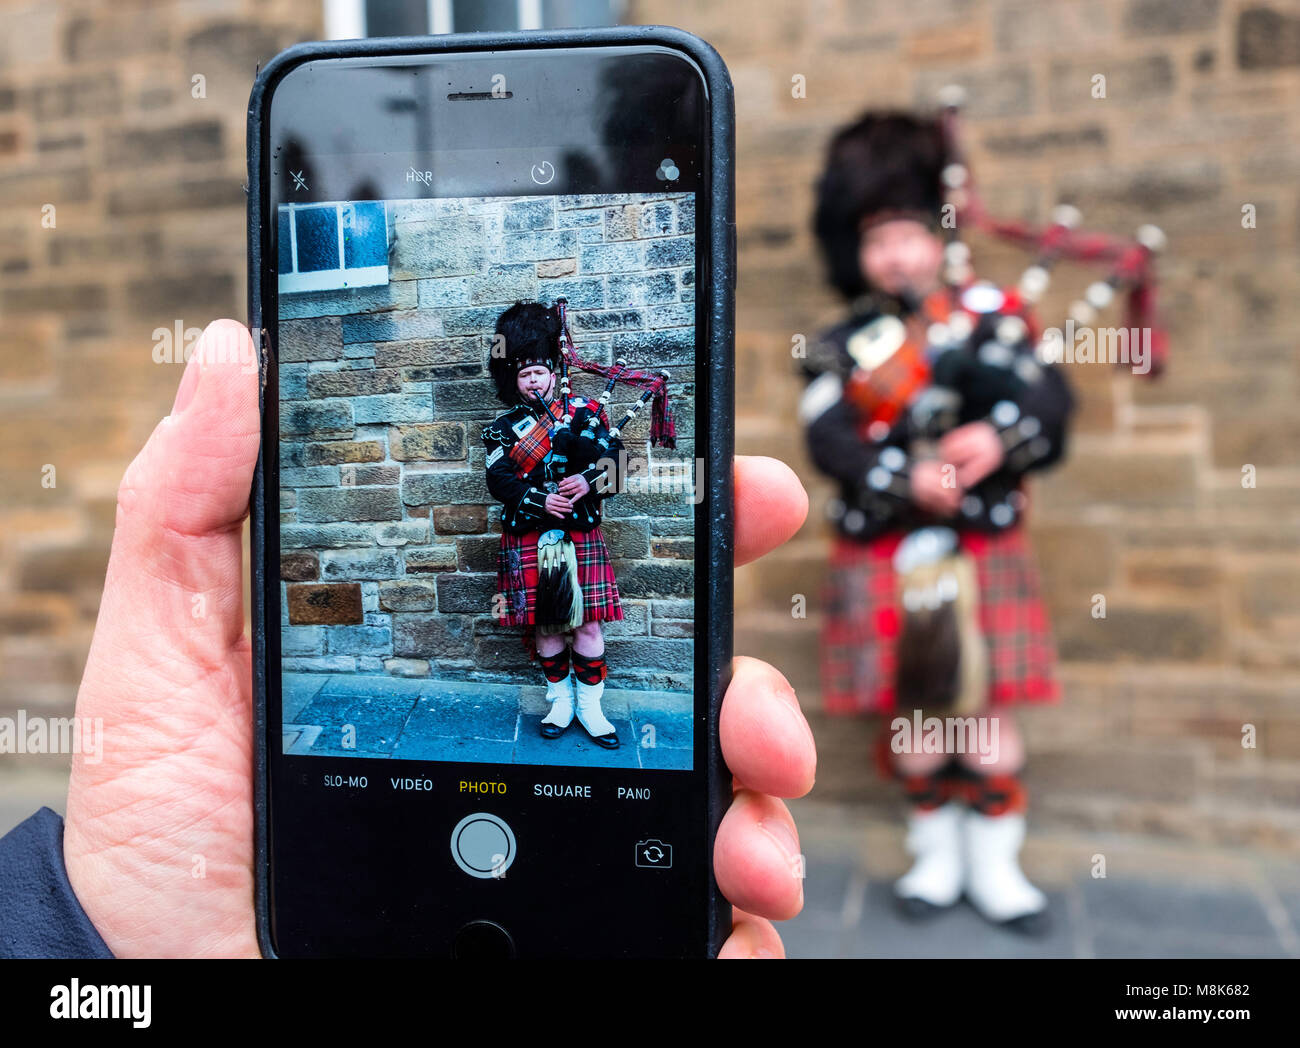 Tourist taking photo of Scottish man in tartan playing bagpipes on the Royal Mile in Edinburgh Old Town, Scotland, - Stock Image